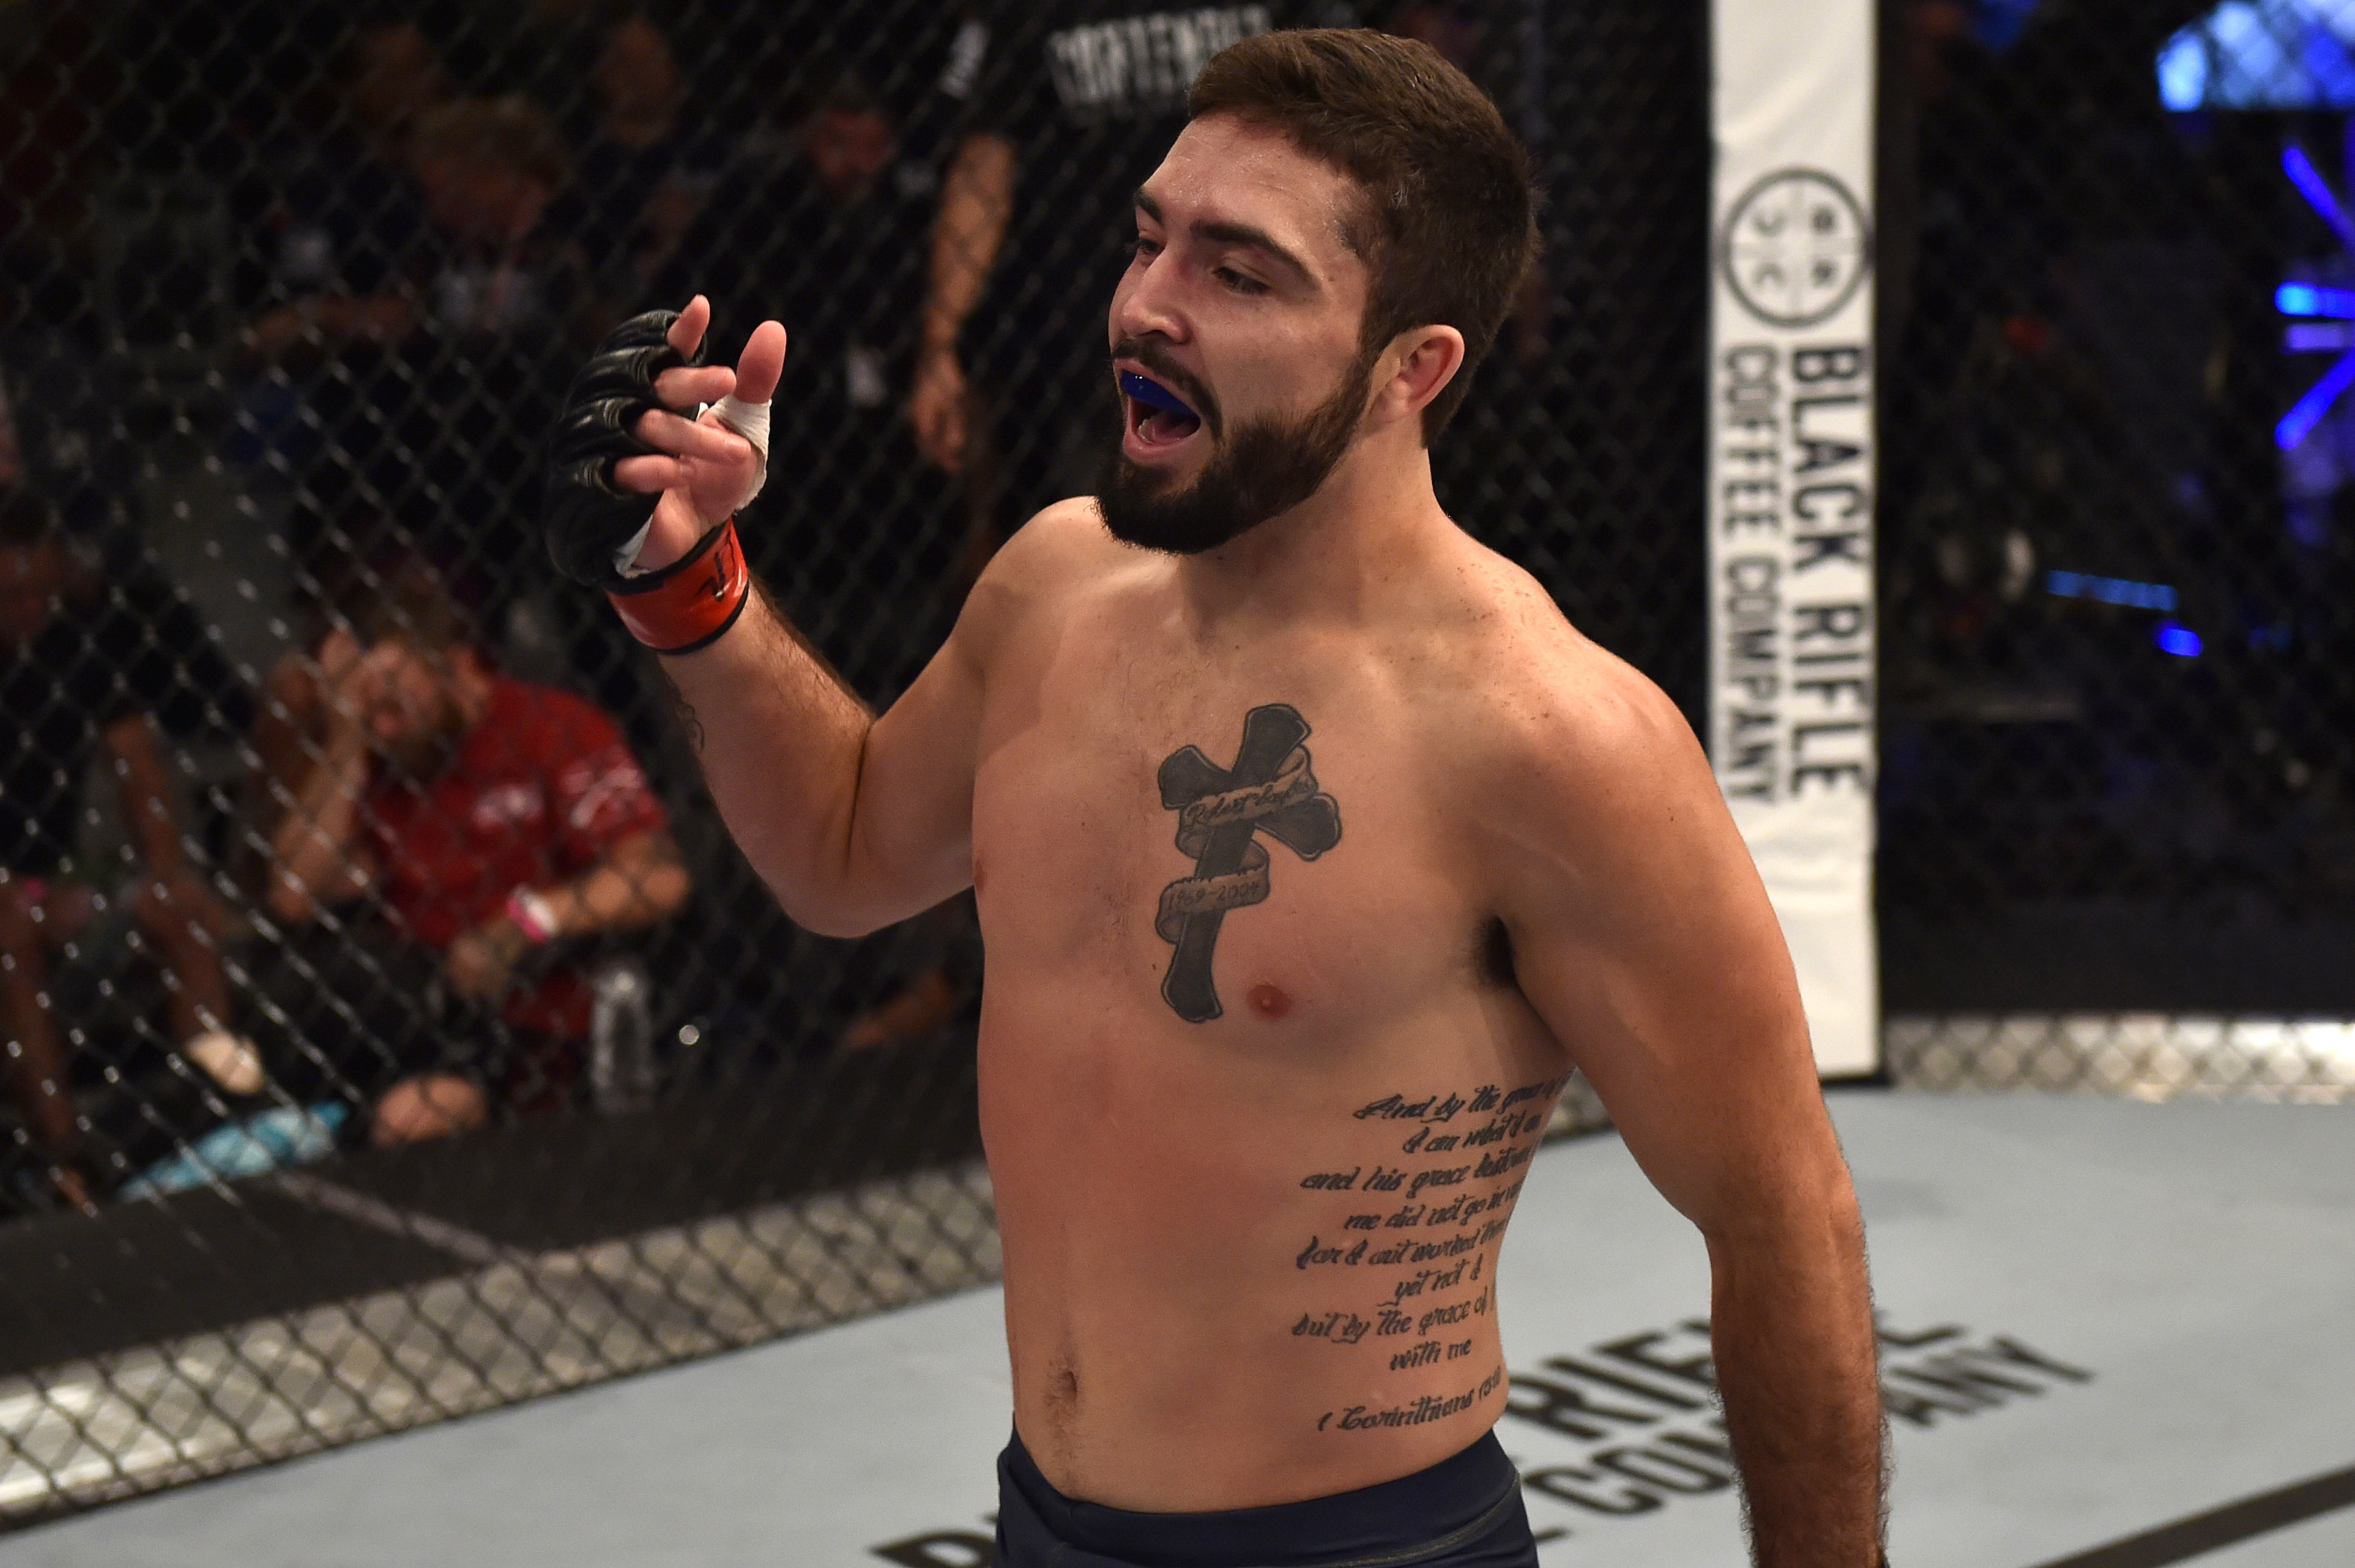 LAS VEGAS, NV - JUNE 19: Matt Sayles celebrates after his victory over <a href='../fighter/Yazan-Hajeh'>Yazan Hajeh</a> in their featherweight bout during Dana White's Tuesday Night Contender Series at the TUF Gym on June 19, 2018 in Las Vegas, Nevada. (Photo by Elliott Howard/DWTNCS LLC)